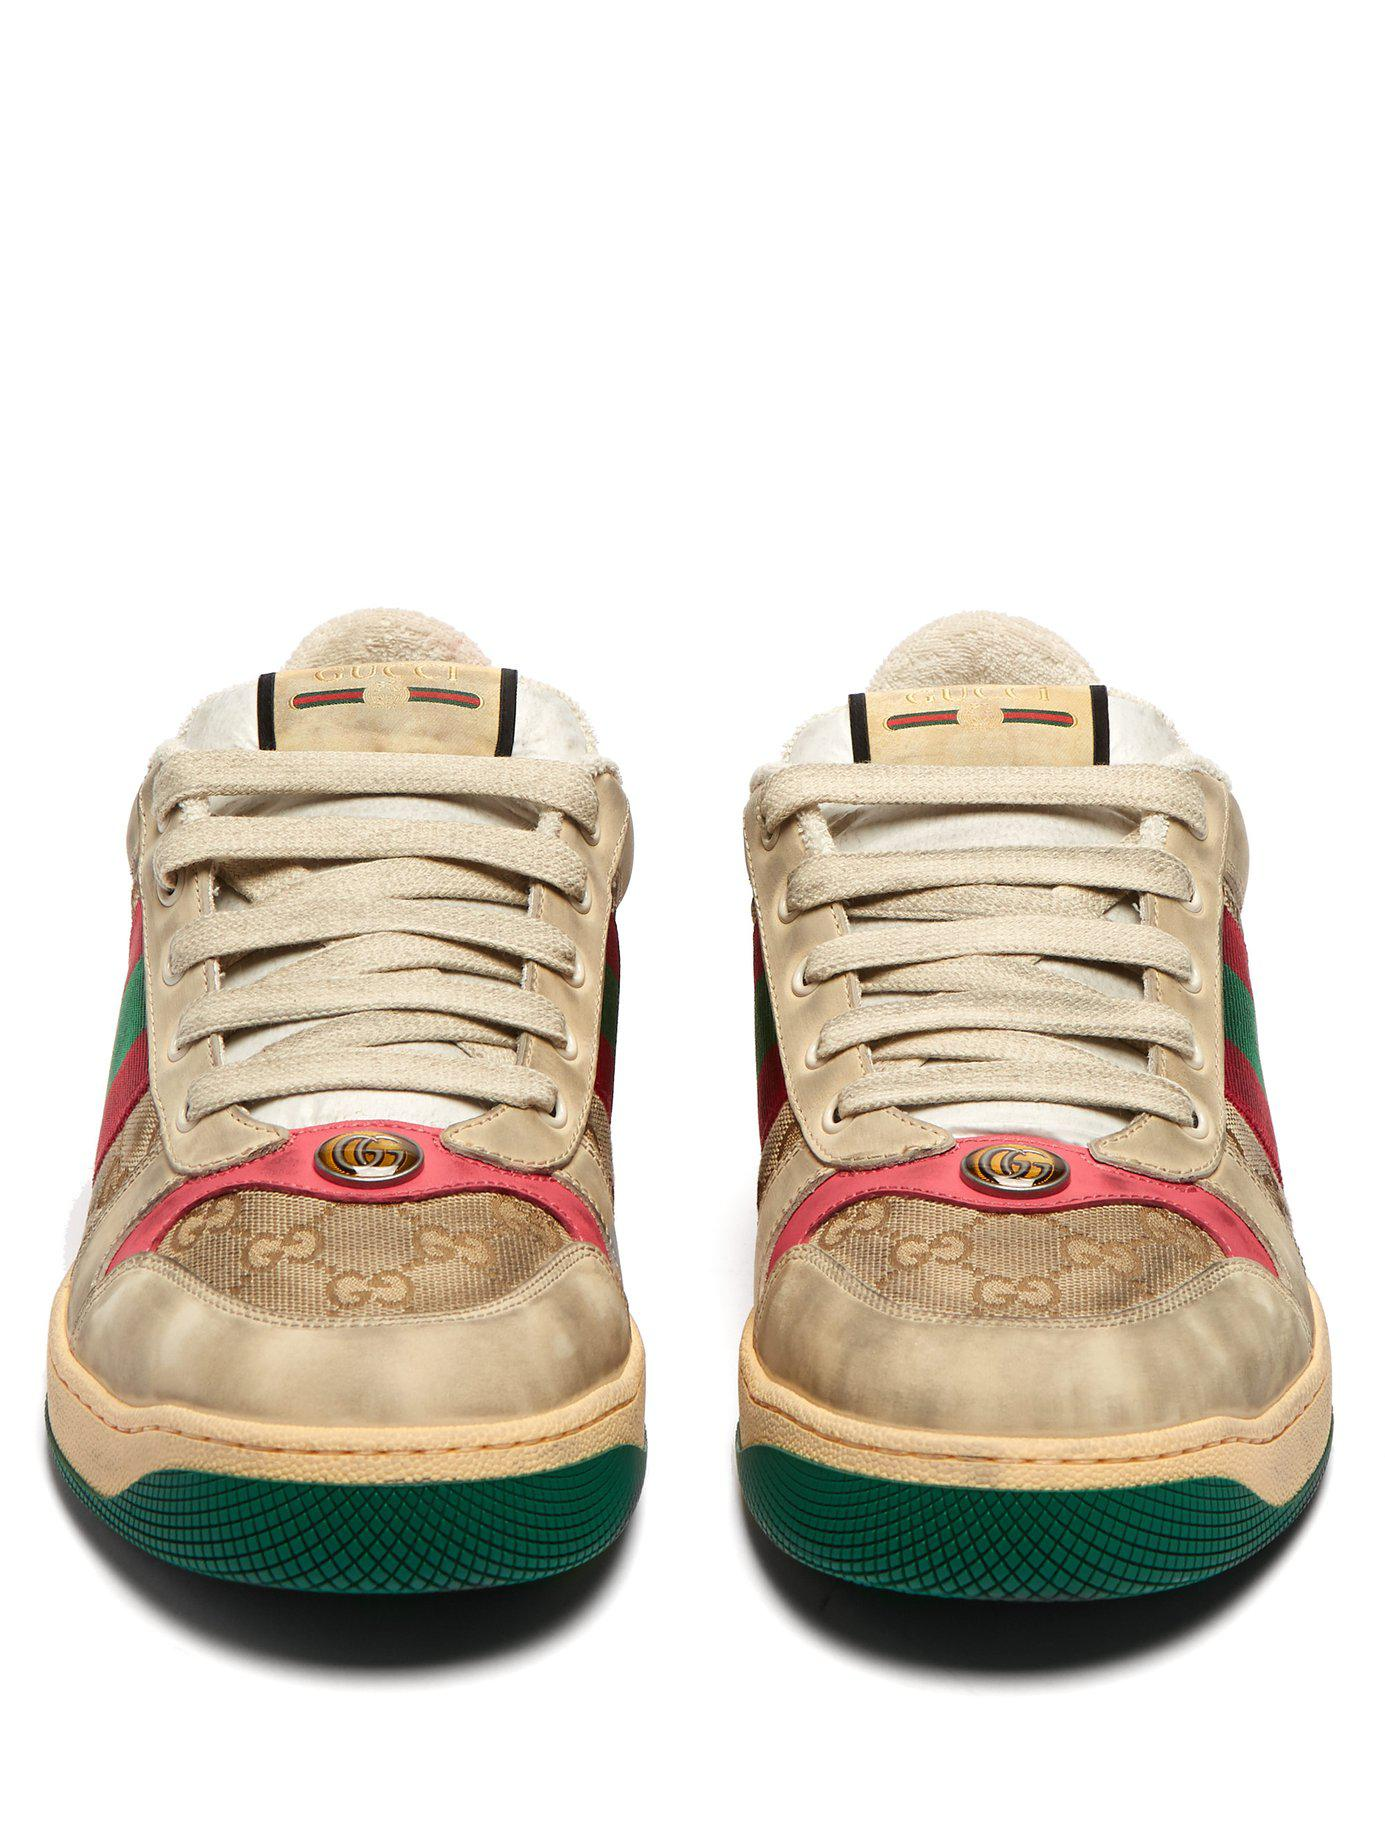 3c8532fee4a Gucci - Multicolor Screener Gg Supreme Leather Trainers for Men - Lyst.  View fullscreen